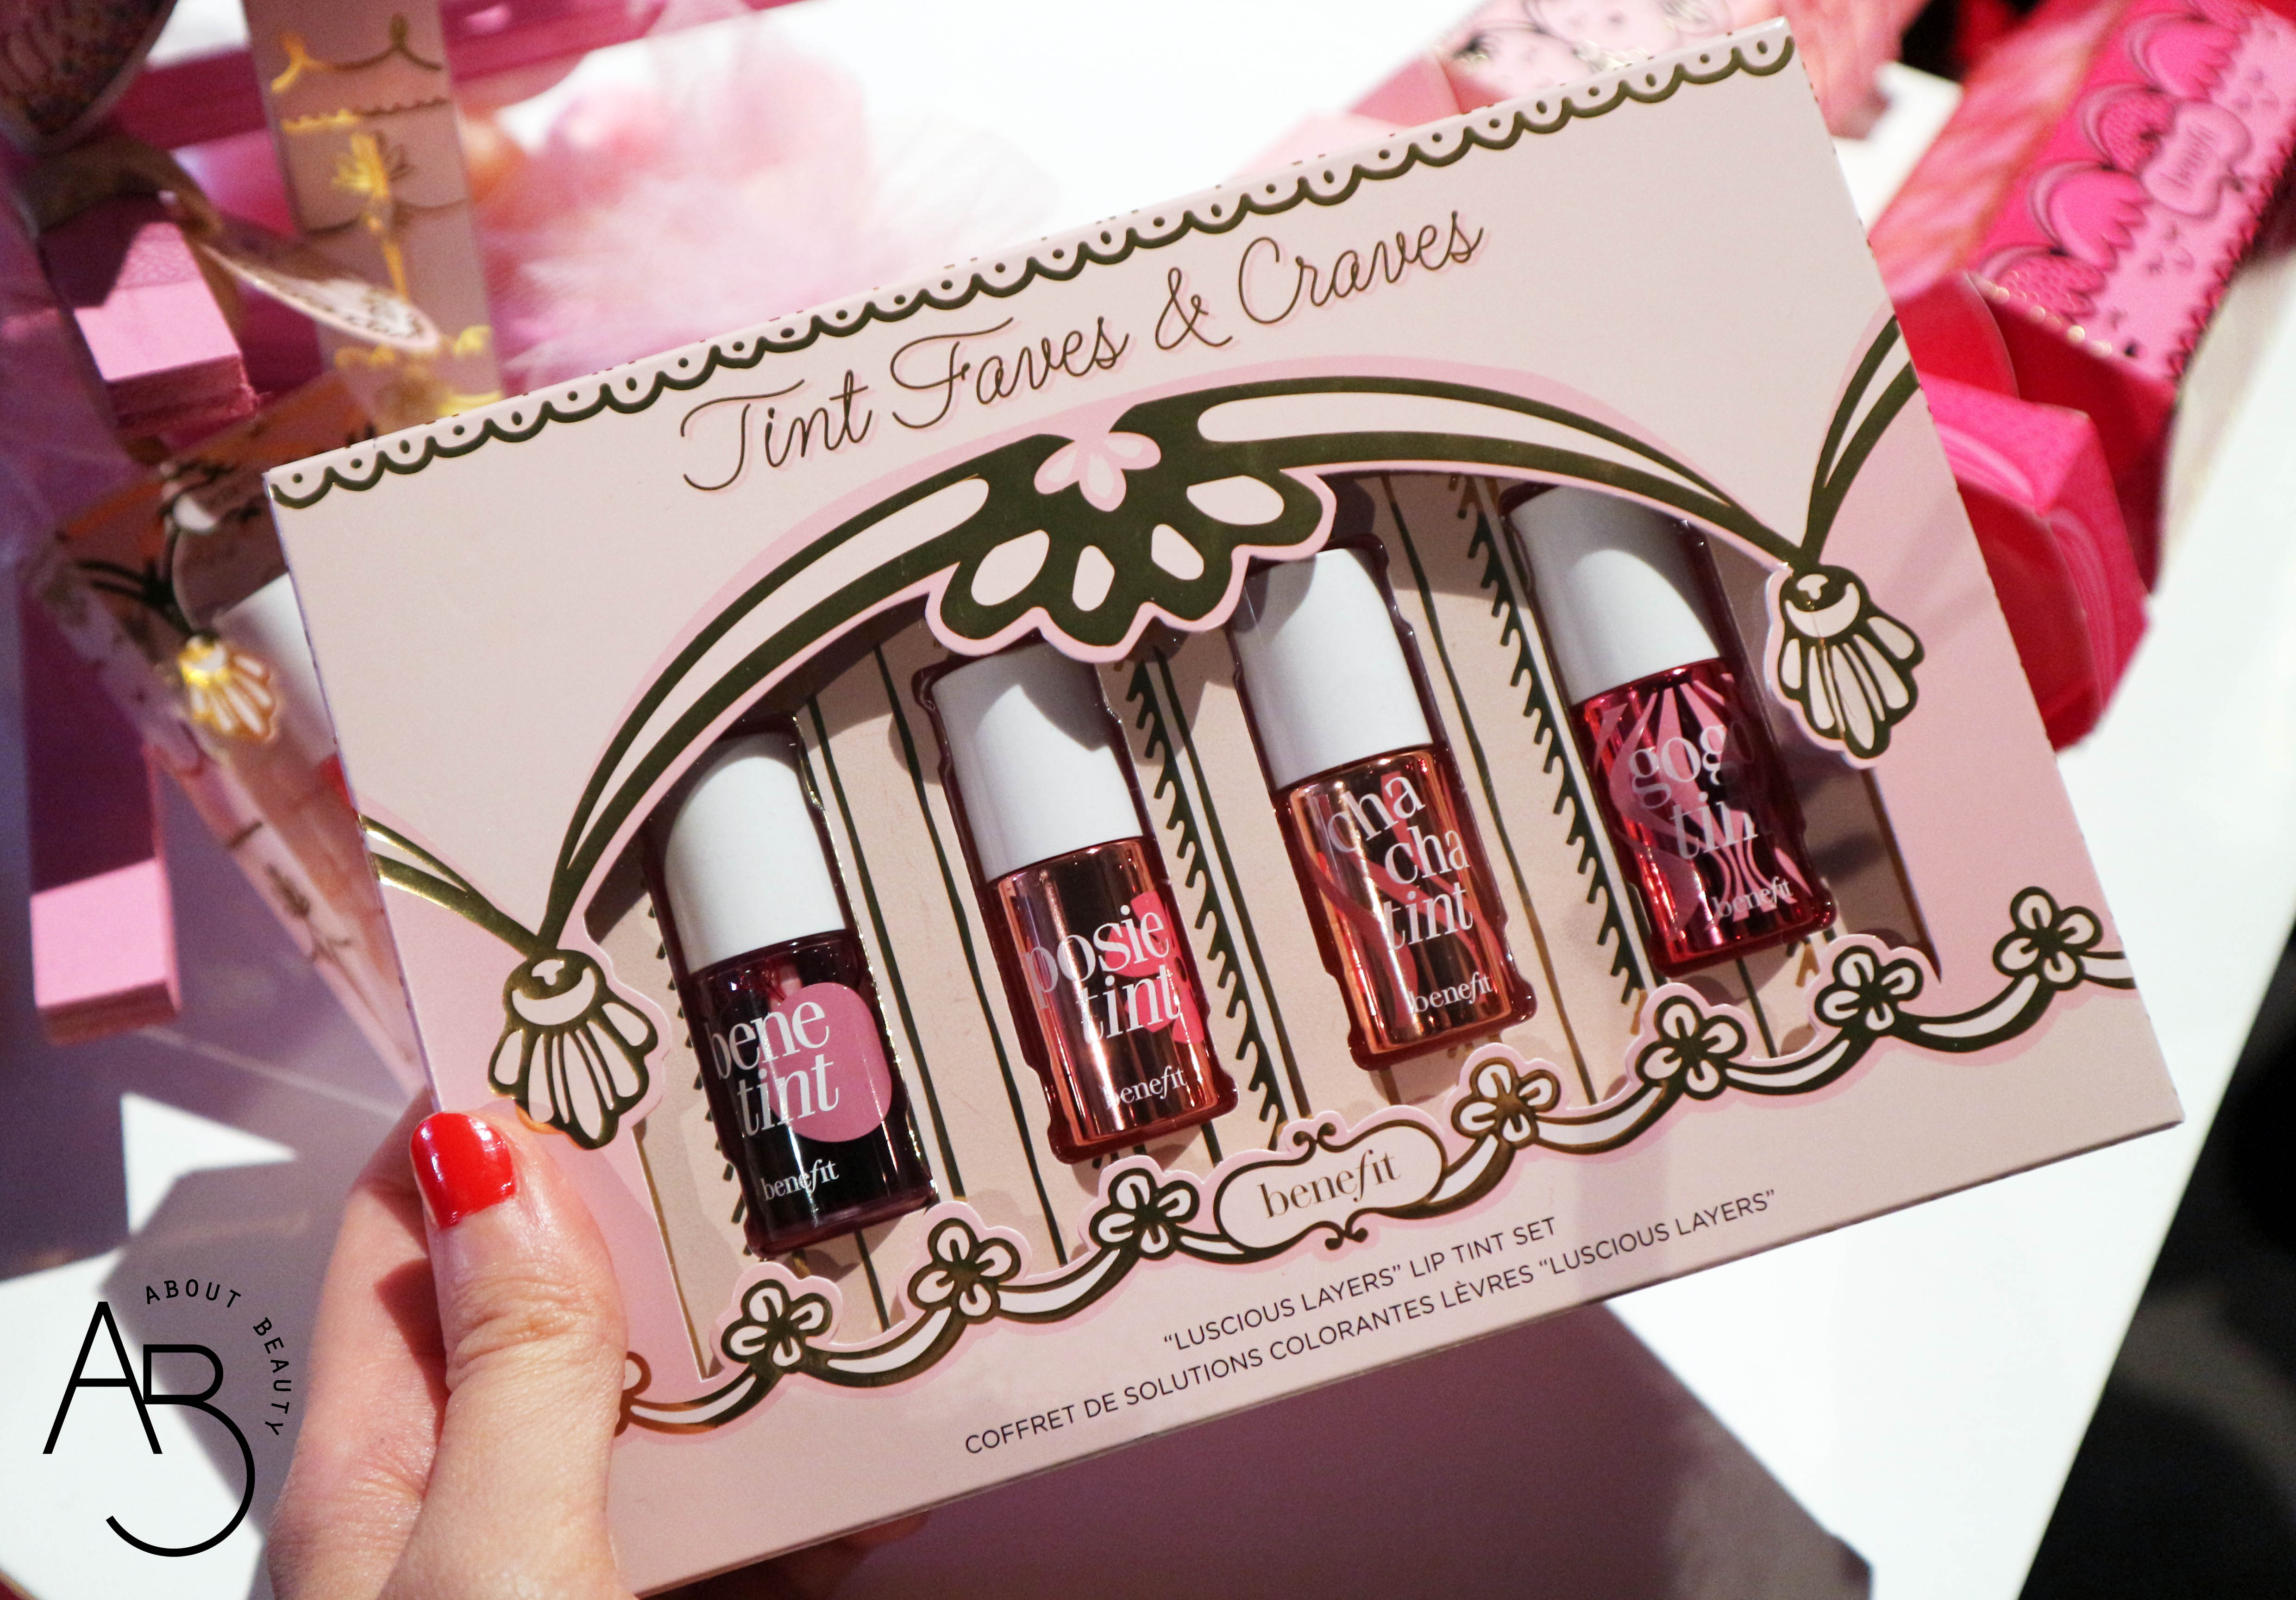 Sephora Natale 2018 Novita da non perdere - Make-up - Benefit Tint Faves and Craves - Review, recensione, swatch, info, prezzo, dove acquistare, data di uscita